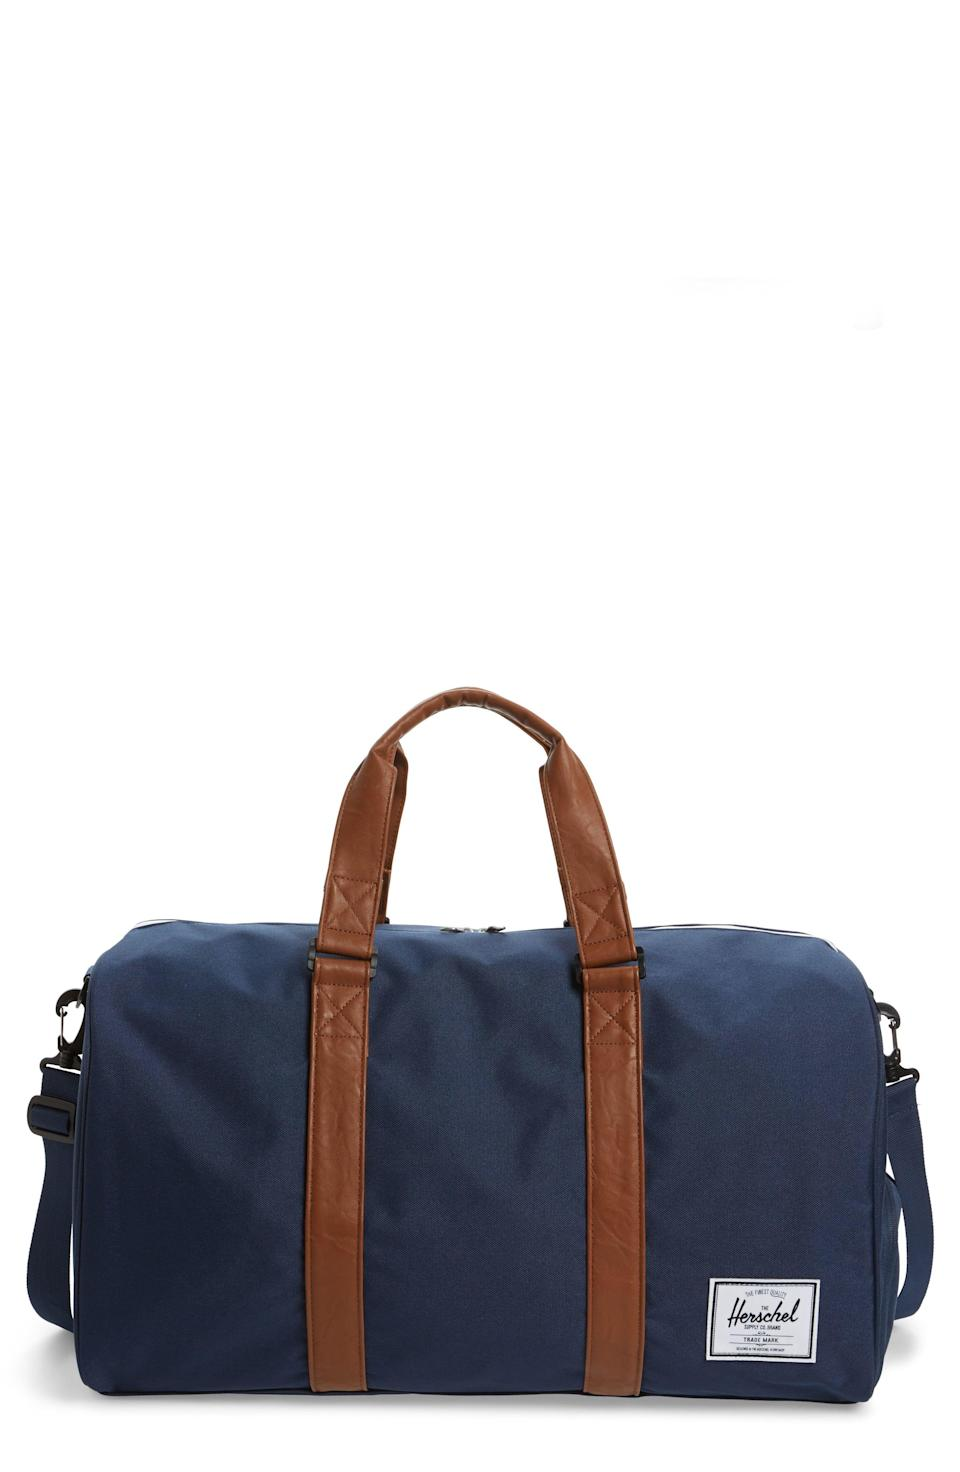 """<p><strong>HERSCHEL SUPPLY CO.</strong></p><p>nordstrom.com</p><p><strong>$54.00</strong></p><p><a href=""""https://go.redirectingat.com?id=74968X1596630&url=https%3A%2F%2Fshop.nordstrom.com%2Fs%2Fherschel-supply-co-duffle-bag%2F5587219&sref=https%3A%2F%2Fwww.goodhousekeeping.com%2Fholidays%2Fgift-ideas%2Fg399%2Fgifts-for-men%2F"""" rel=""""nofollow noopener"""" target=""""_blank"""" data-ylk=""""slk:Shop Now"""" class=""""link rapid-noclick-resp"""">Shop Now</a></p><p>Help him travel in style with this bag from Herschel Supply Co., which is just as functional as it is fashionable. There's even a special compartment to store his smelly sneakers, in case he prefers to use it as a gym bag. </p>"""